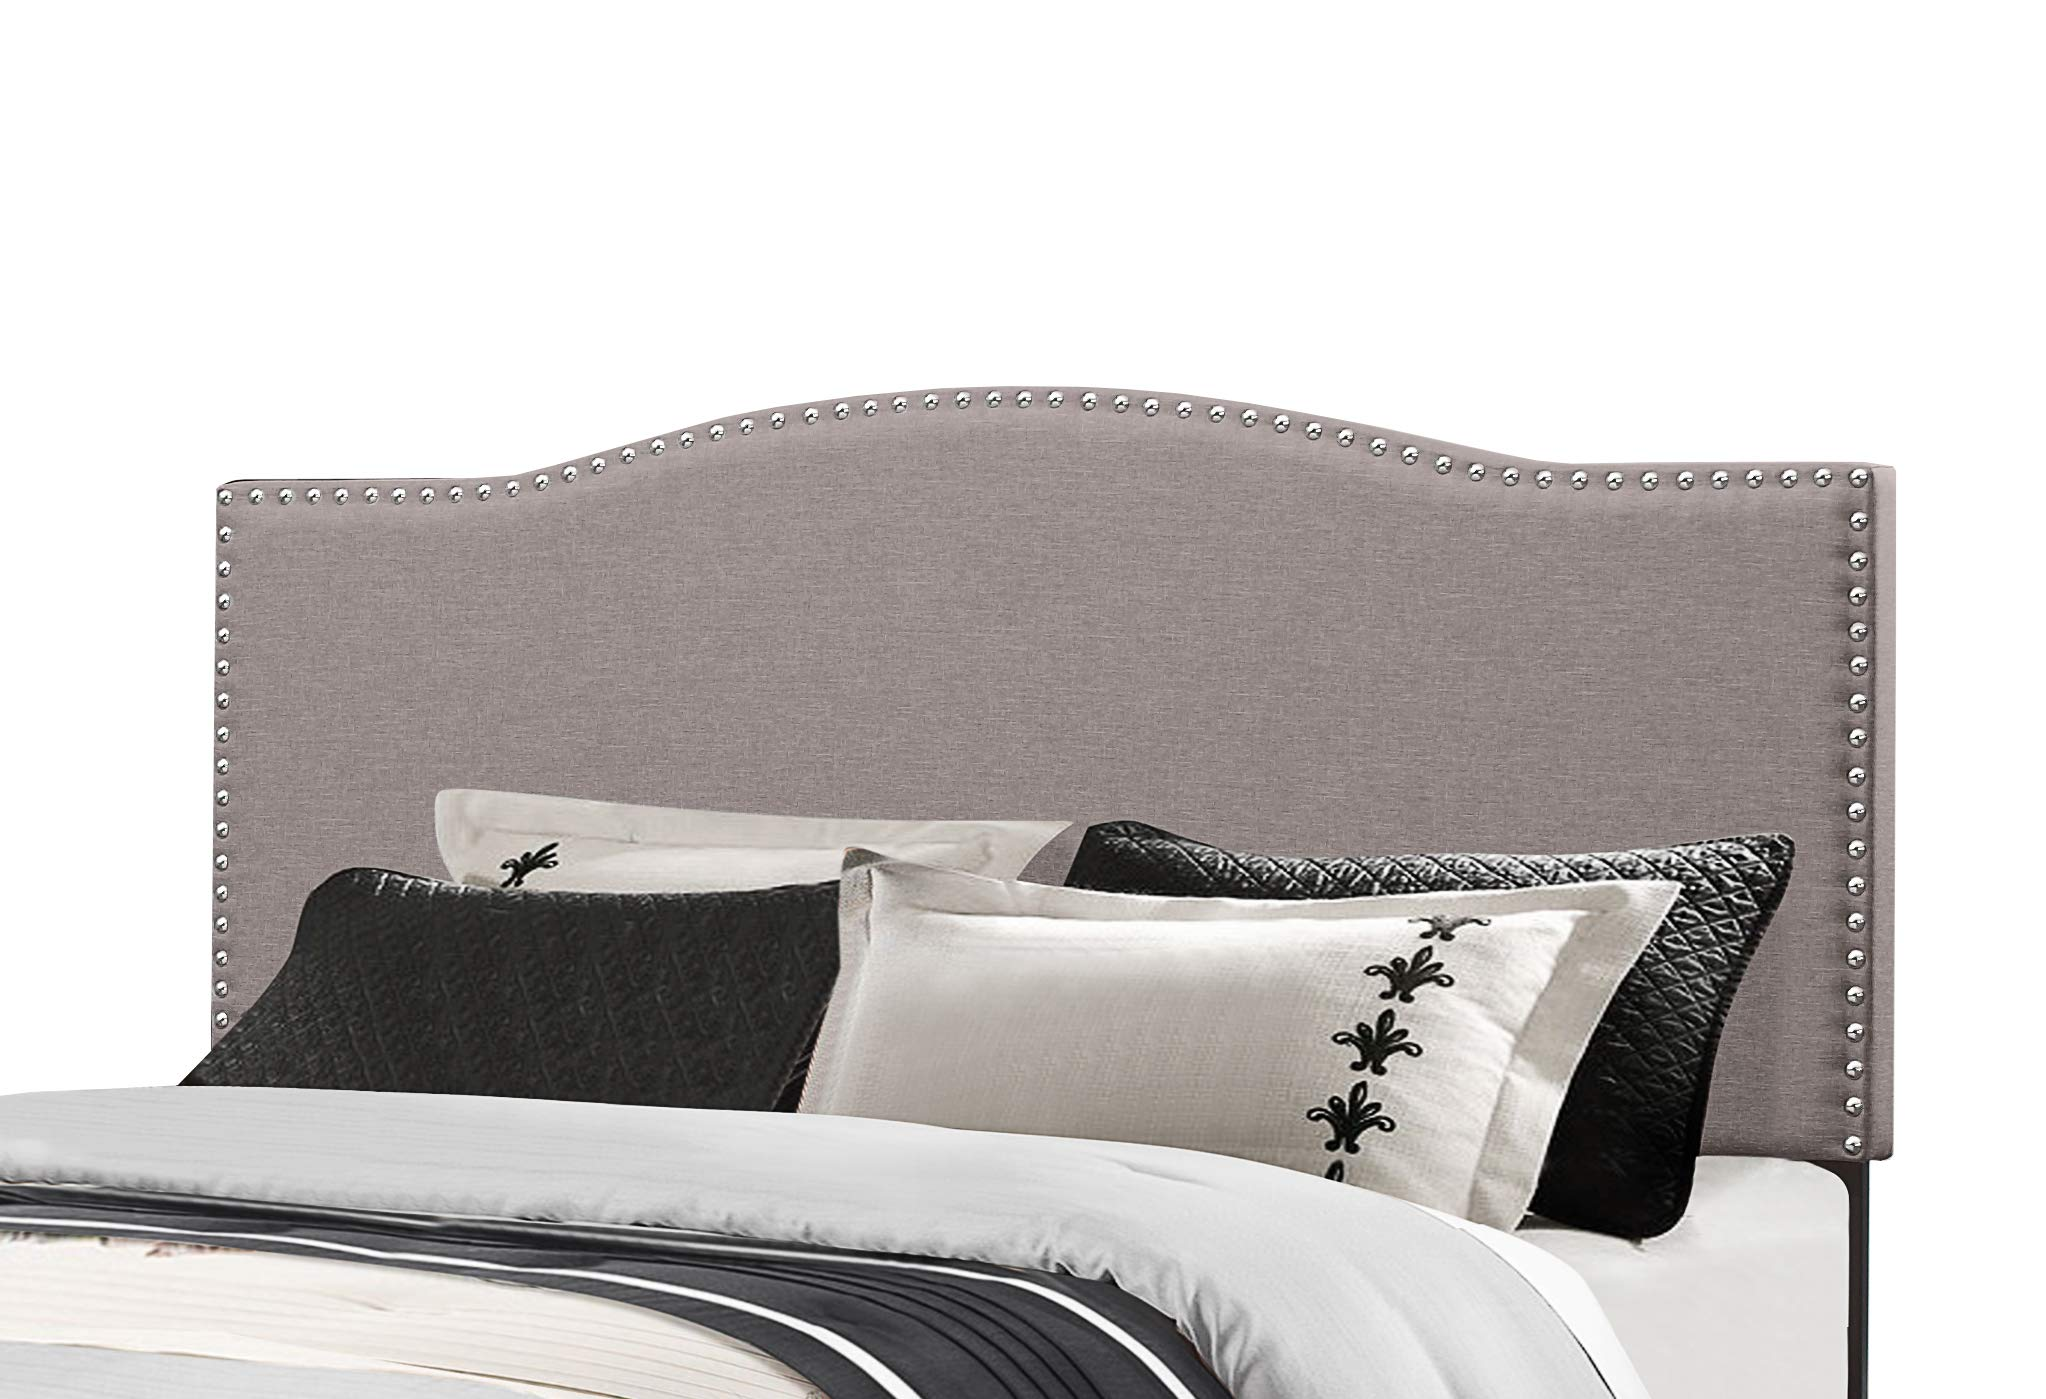 Hillsdale Furniture Kiley Headboard Without Frame Full/Queen Glacier Gray